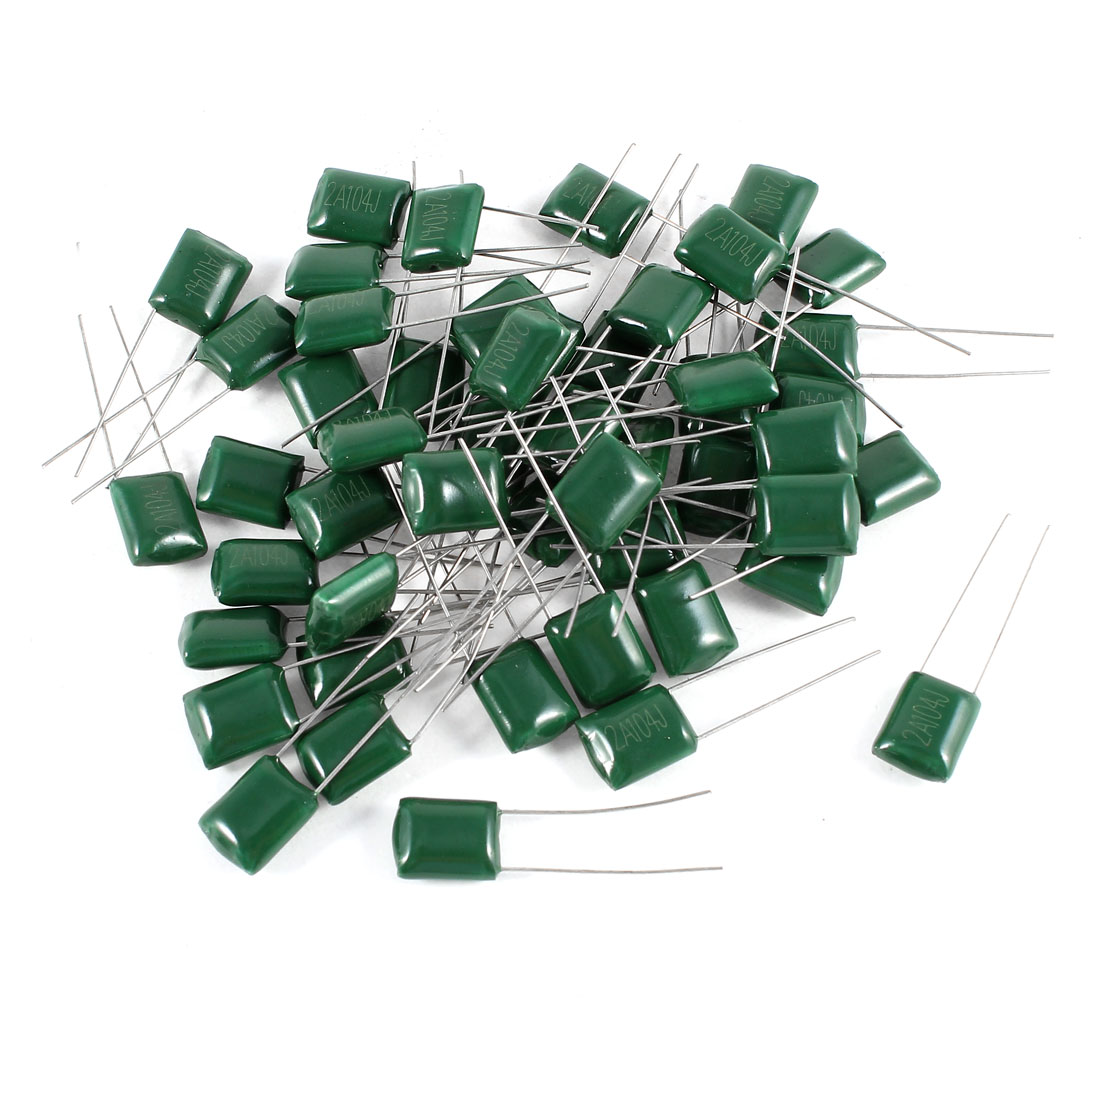 50 Pcs Radial Leads Polyester Film Cap Capacitance Capacitors Green 2A104J 100V 100nF 5%